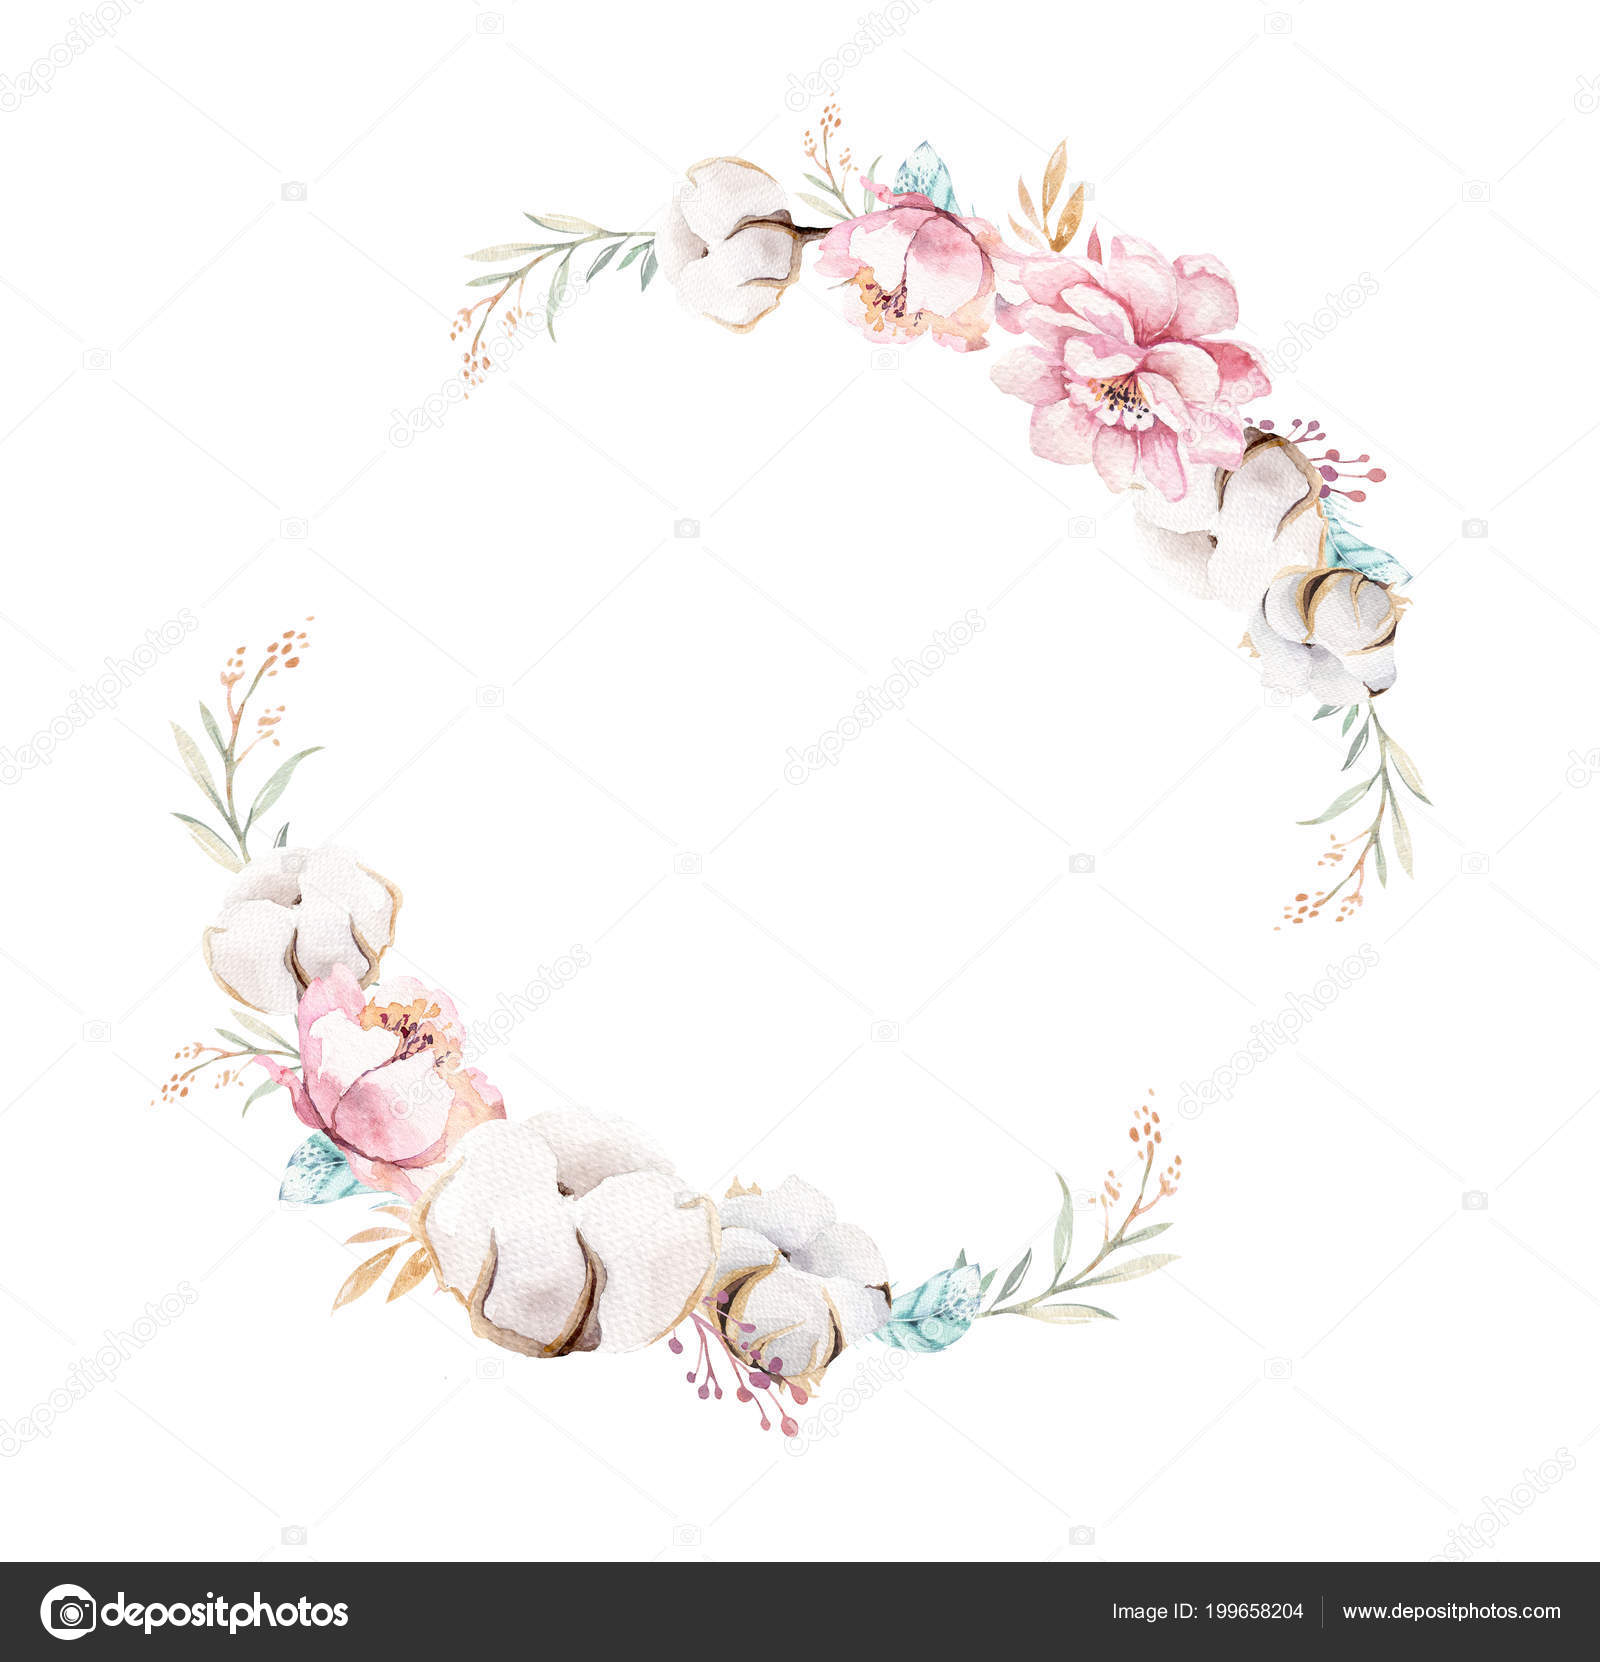 Clipart: boho wreath.